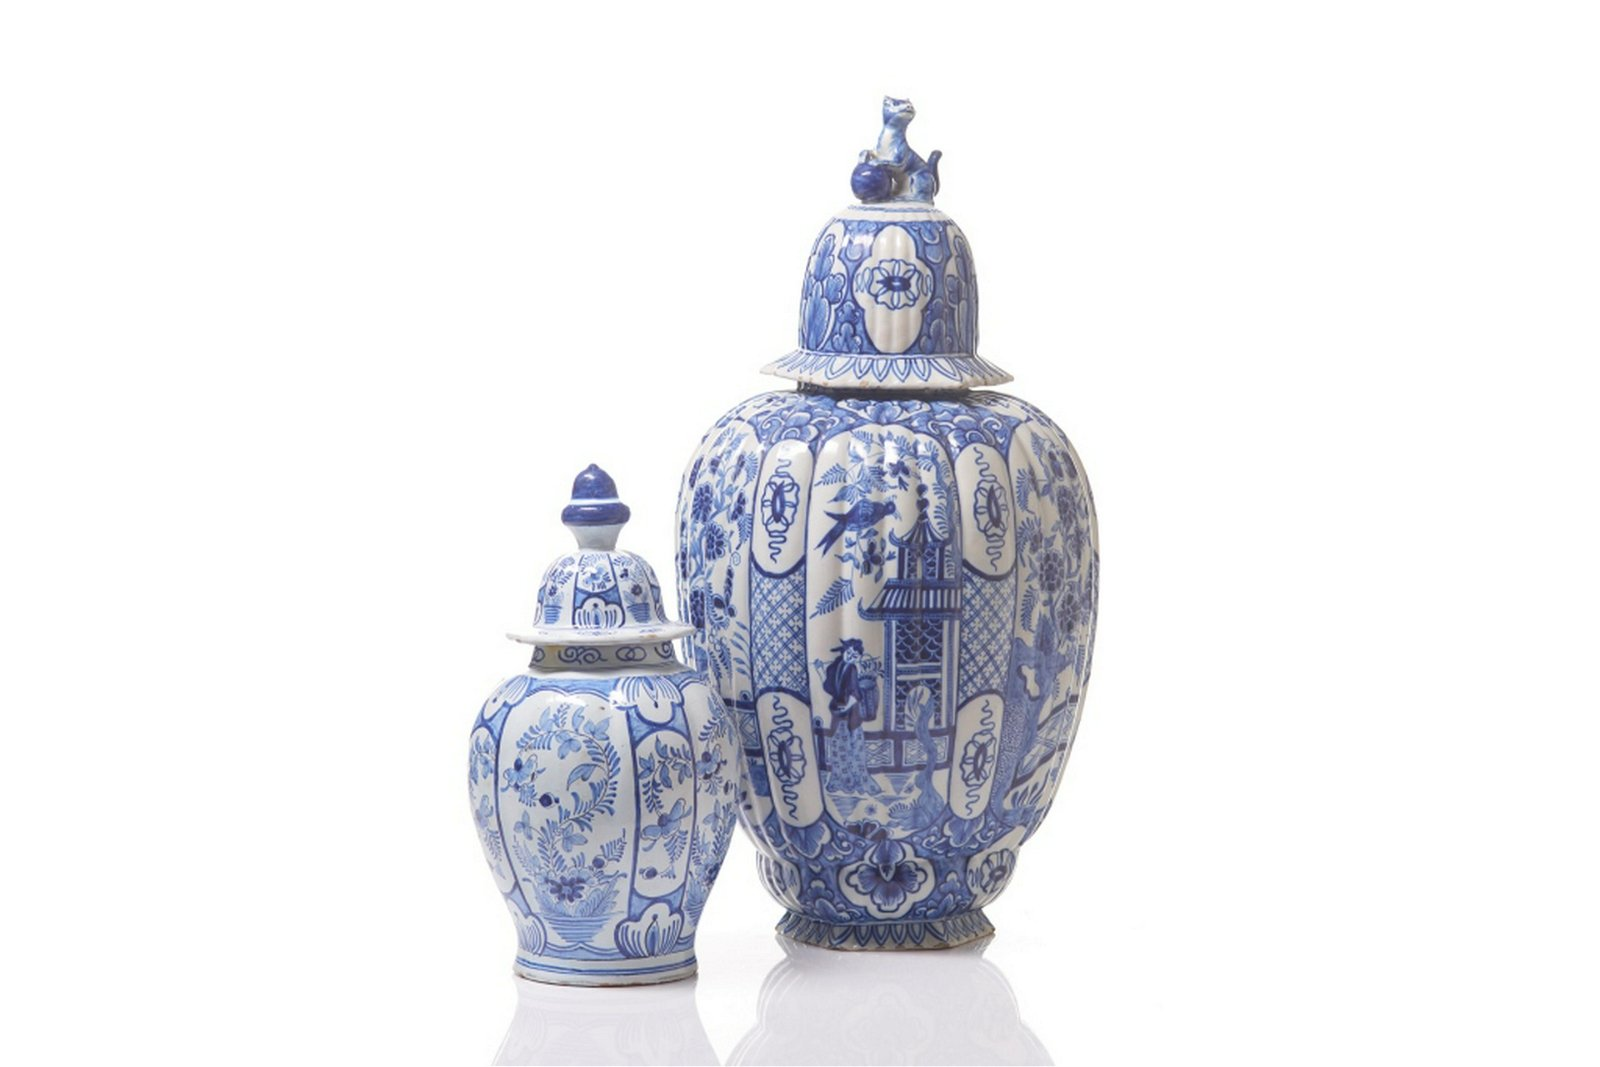 TWO BLUE & WHITE DELFT POTTERY COVERED VASES